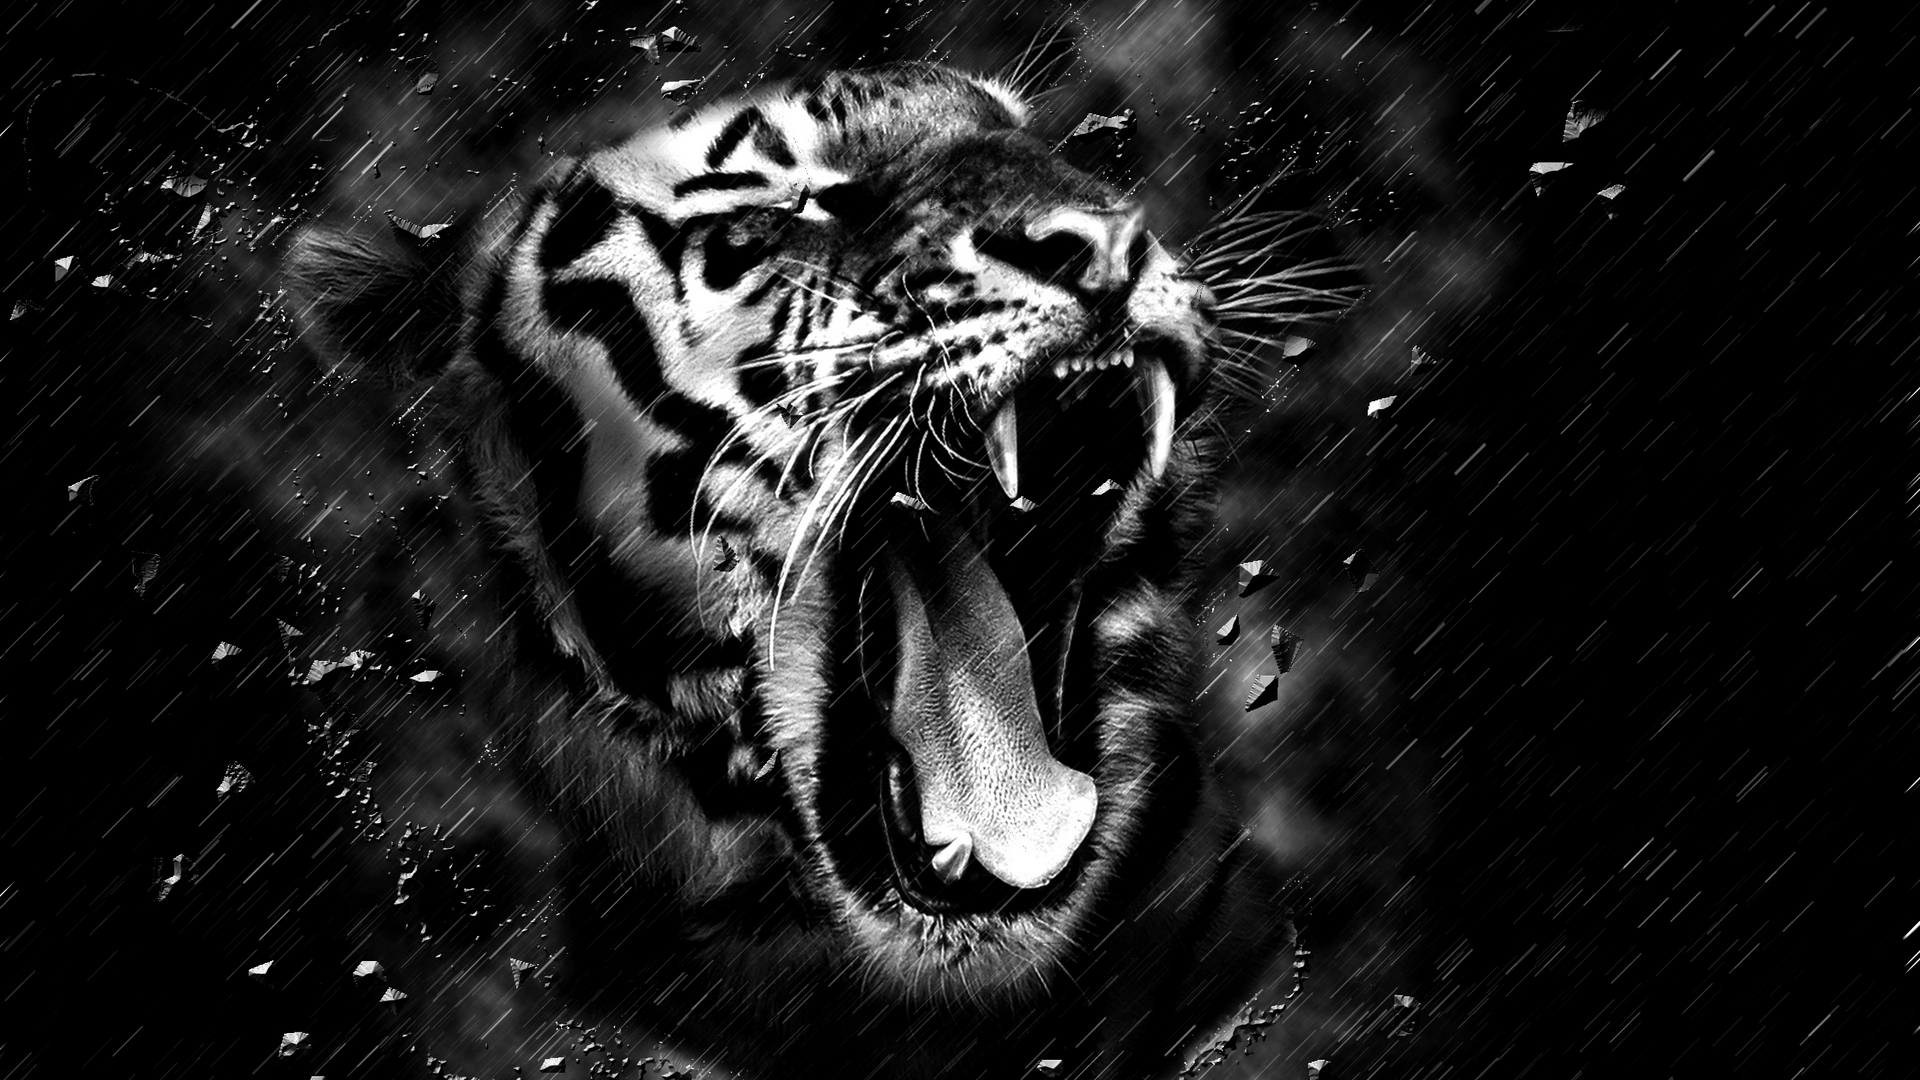 Tiger Hd Wallpapers 1920x1080 Posted By Ryan Sellers